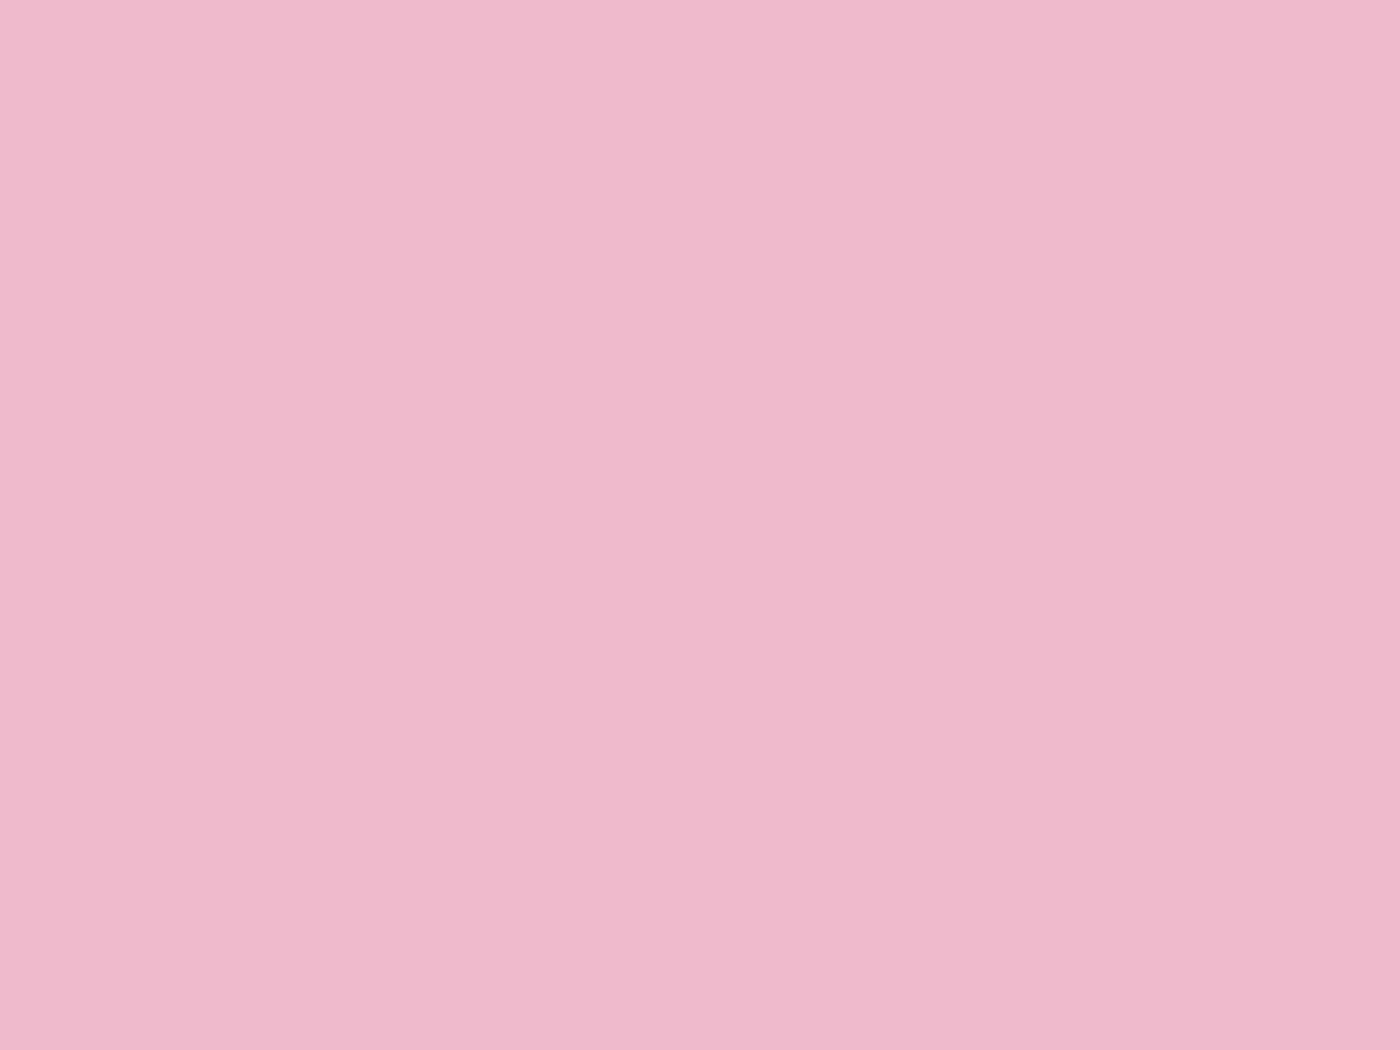 1400x1050 Cameo Pink Solid Color Background